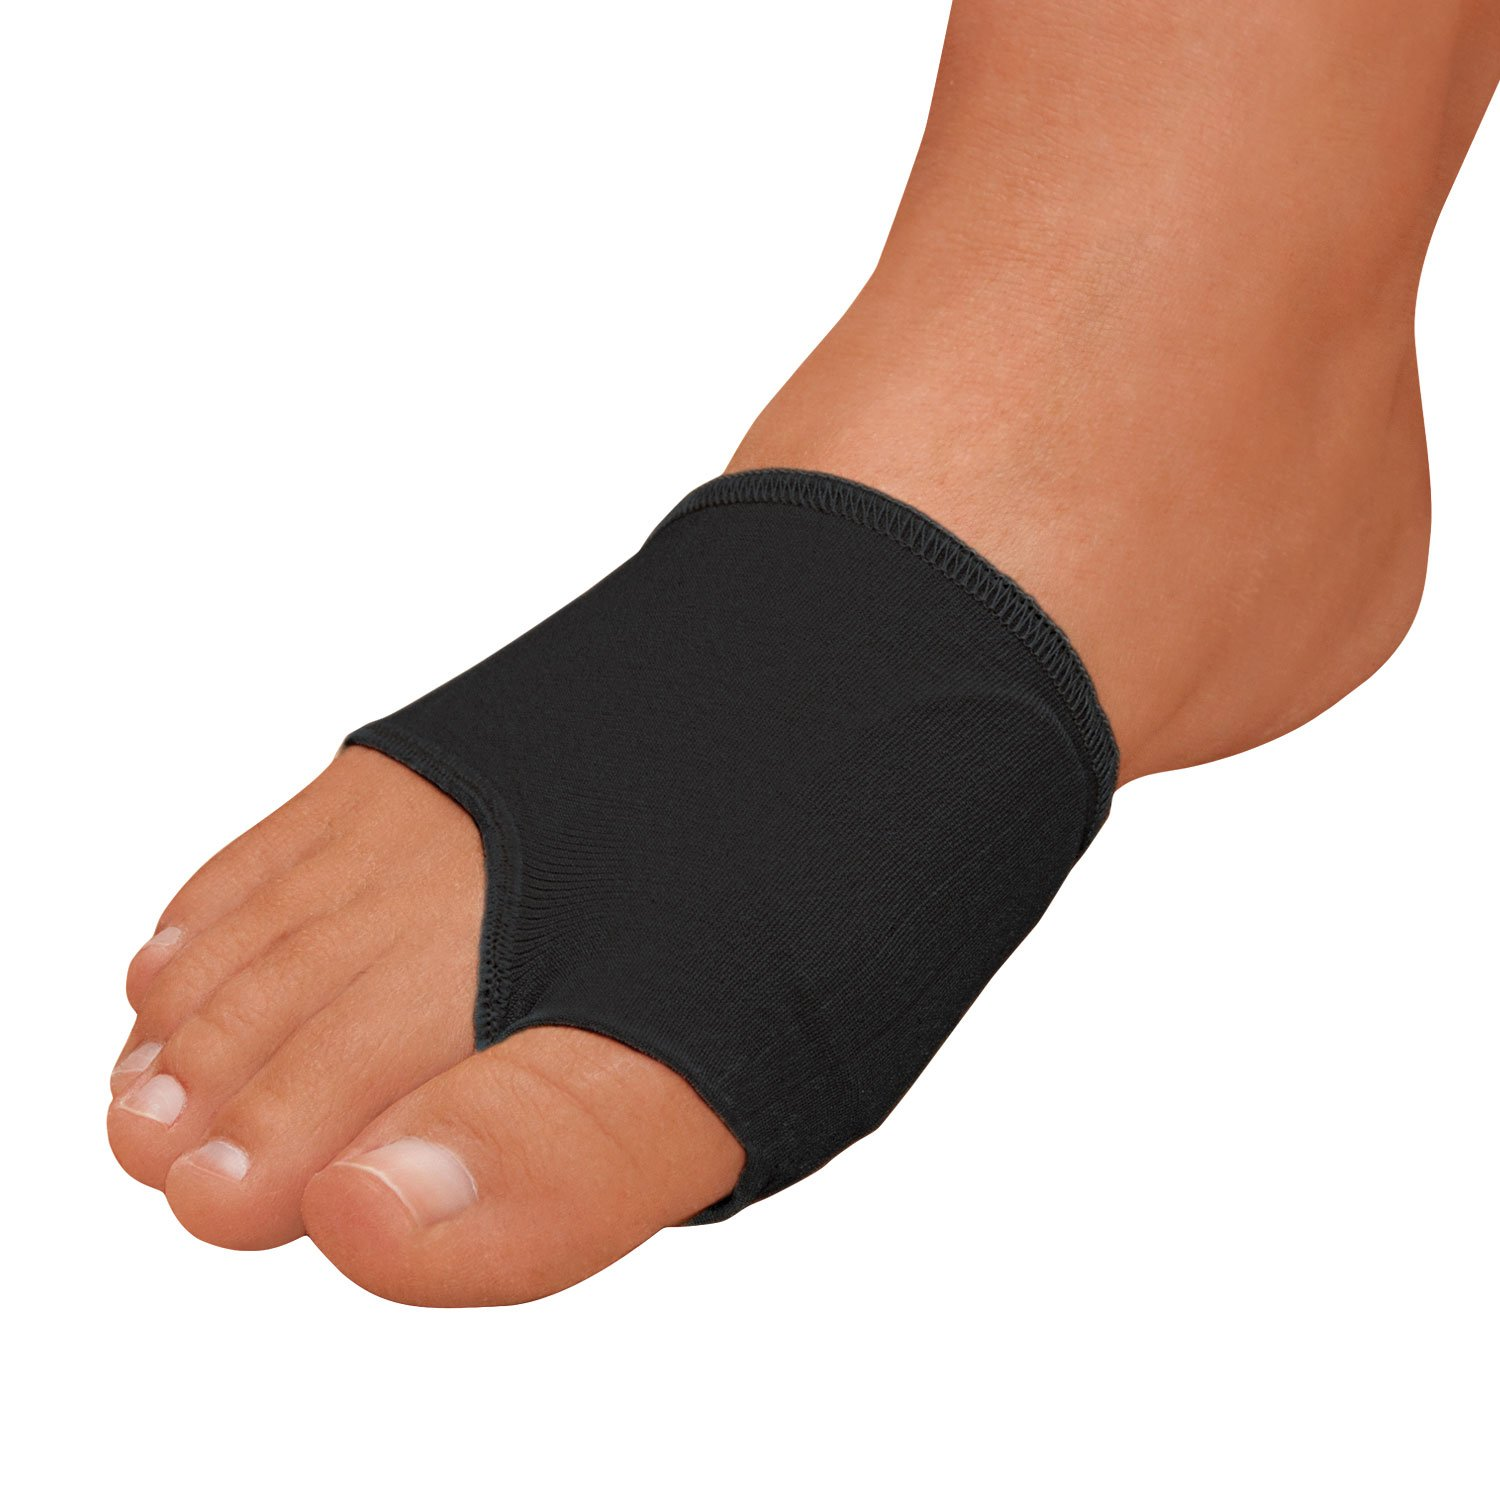 Silipos Active 7213 Gel Bunion Sleeve 1 Sleeve - Latex Free, Hypoallergenic Foot Sleeve. Foot Care Products